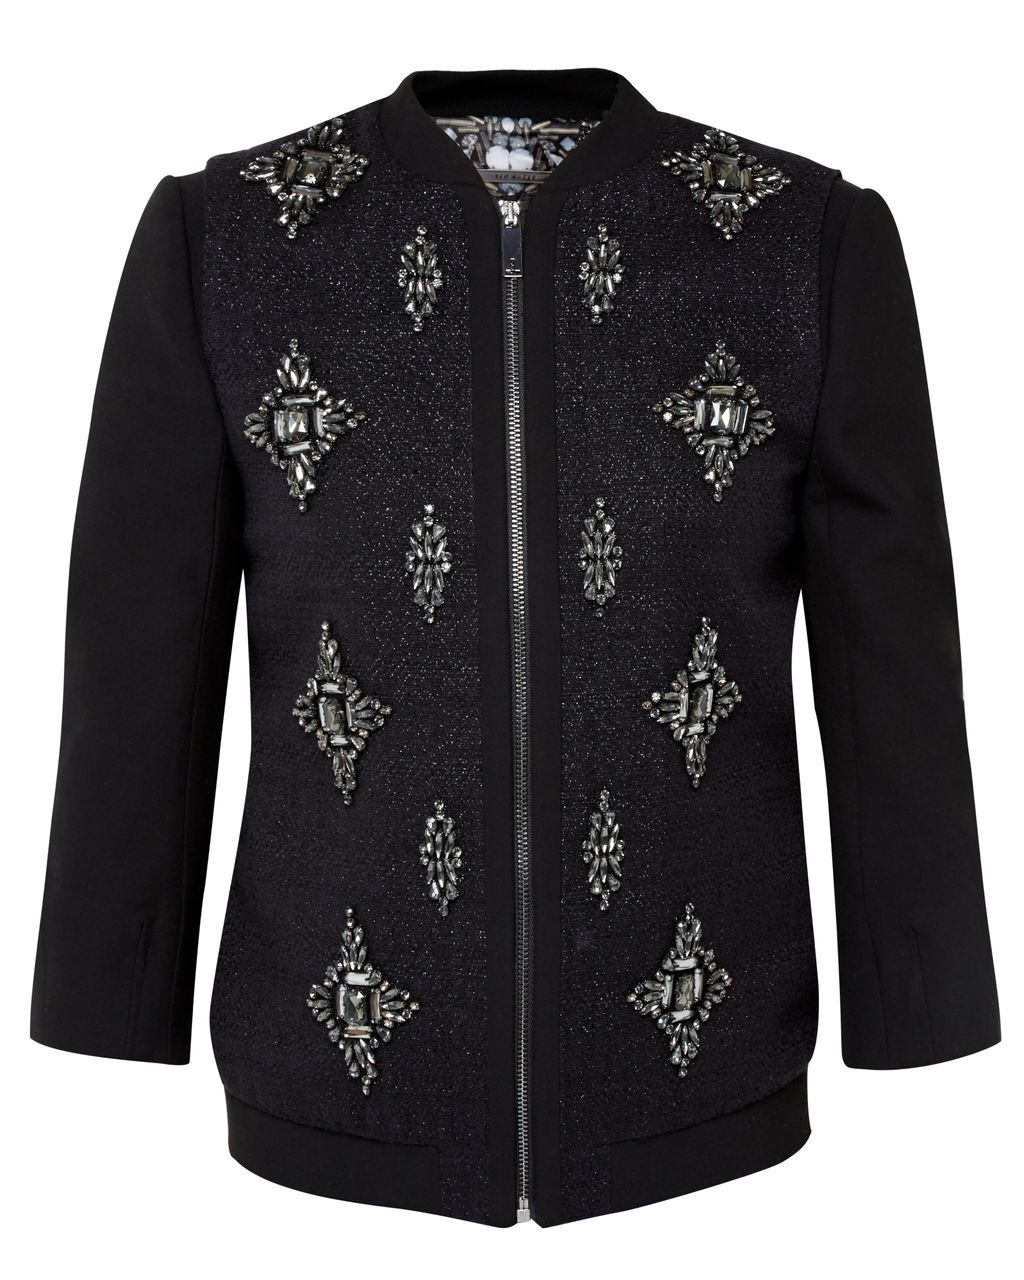 Banwell Embellished Bomber Jacket, Black - collar: round collar/collarless; fit: slim fit; style: bomber; secondary colour: silver; predominant colour: black; length: standard; sleeve length: 3/4 length; sleeve style: standard; collar break: high; pattern type: fabric; pattern: patterned/print; texture group: other - light to midweight; embellishment: crystals/glass; fibres: viscose/rayon - mix; occasions: creative work; season: a/w 2015; wardrobe: highlight; embellishment location: all over